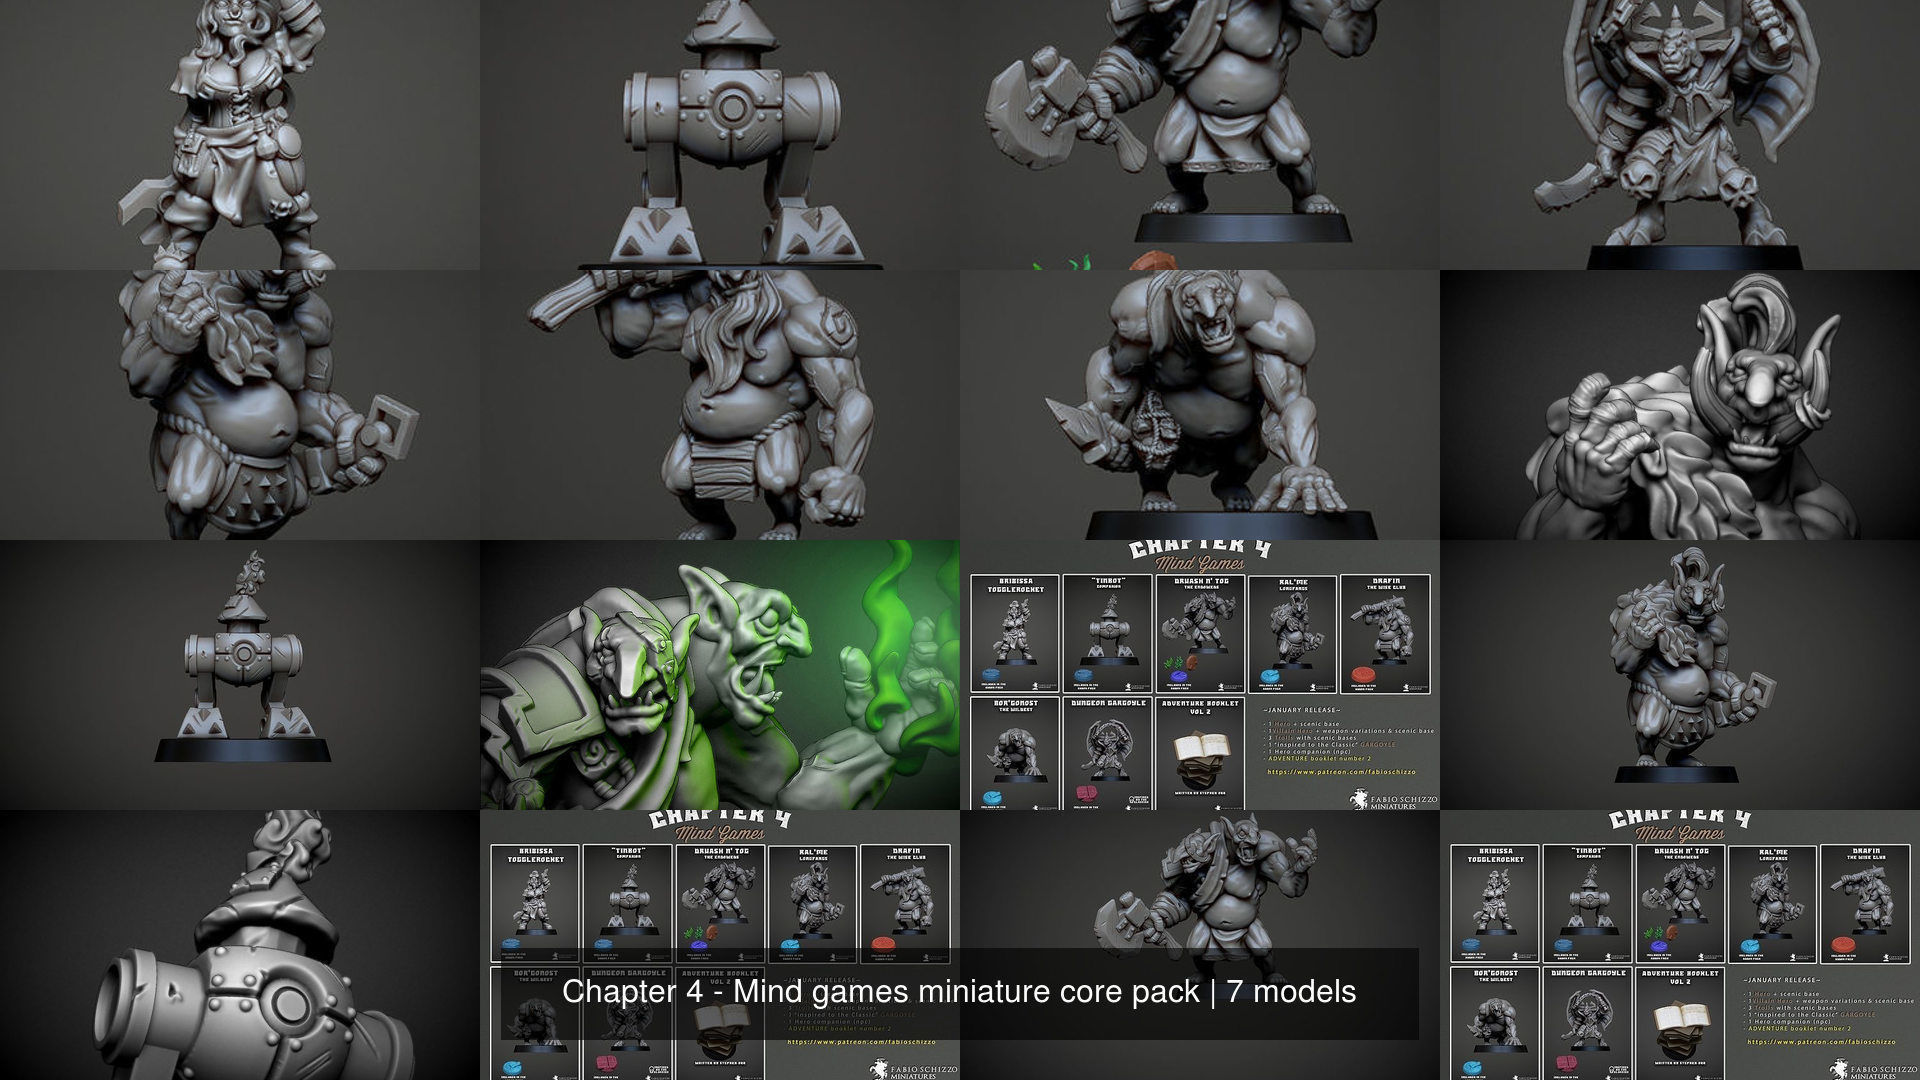 Chapter 4 - Mind games miniature core pack